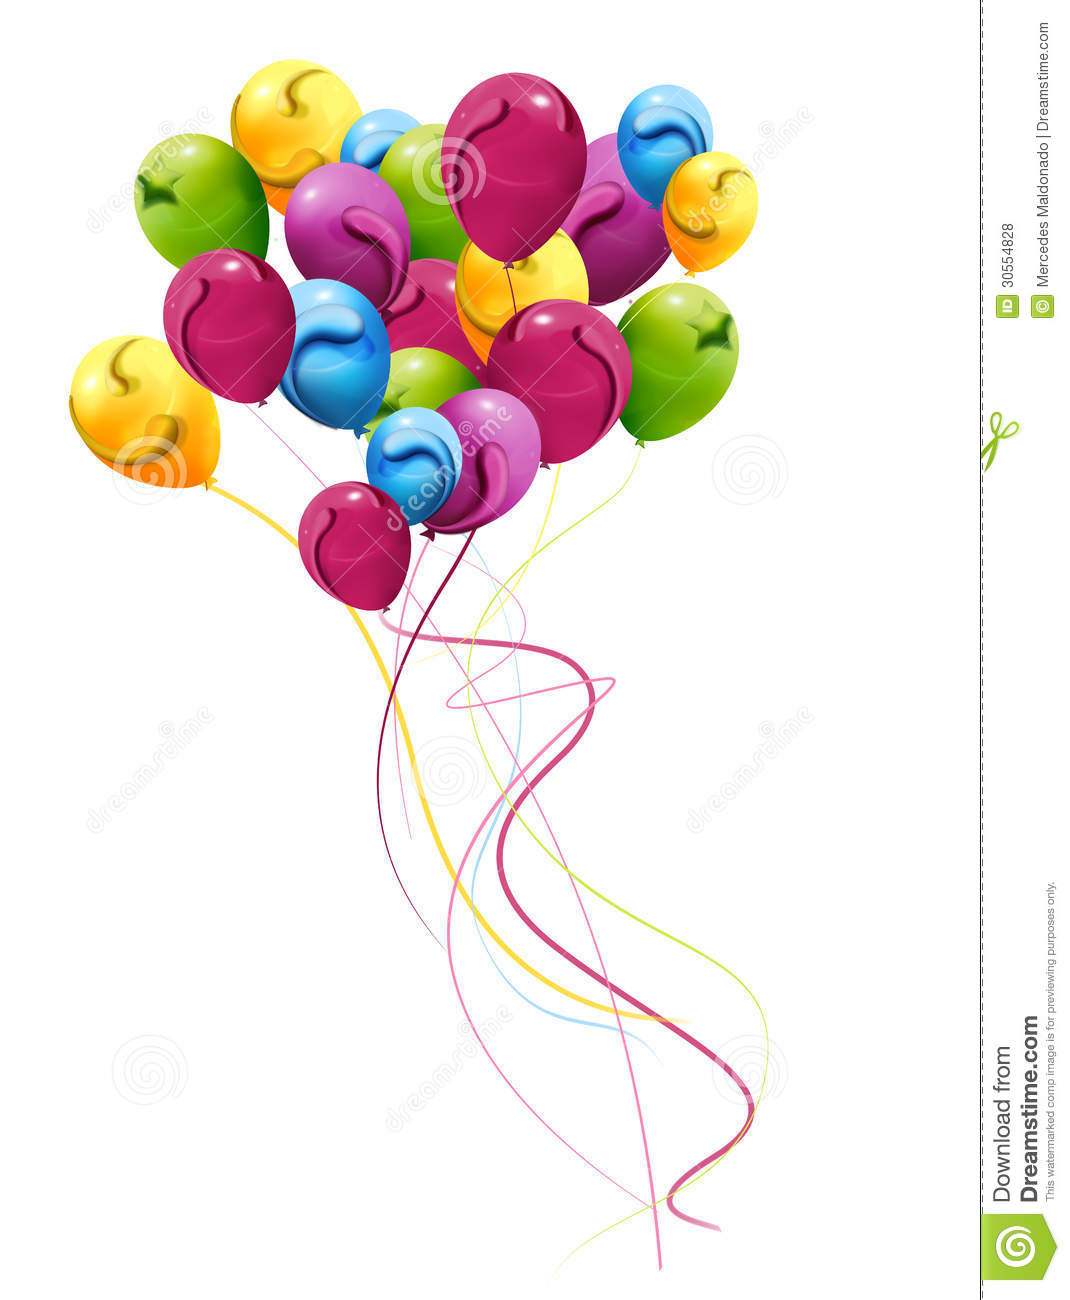 Colorful Balloons, Decorated With Cheerful Bouquet Royalty Free